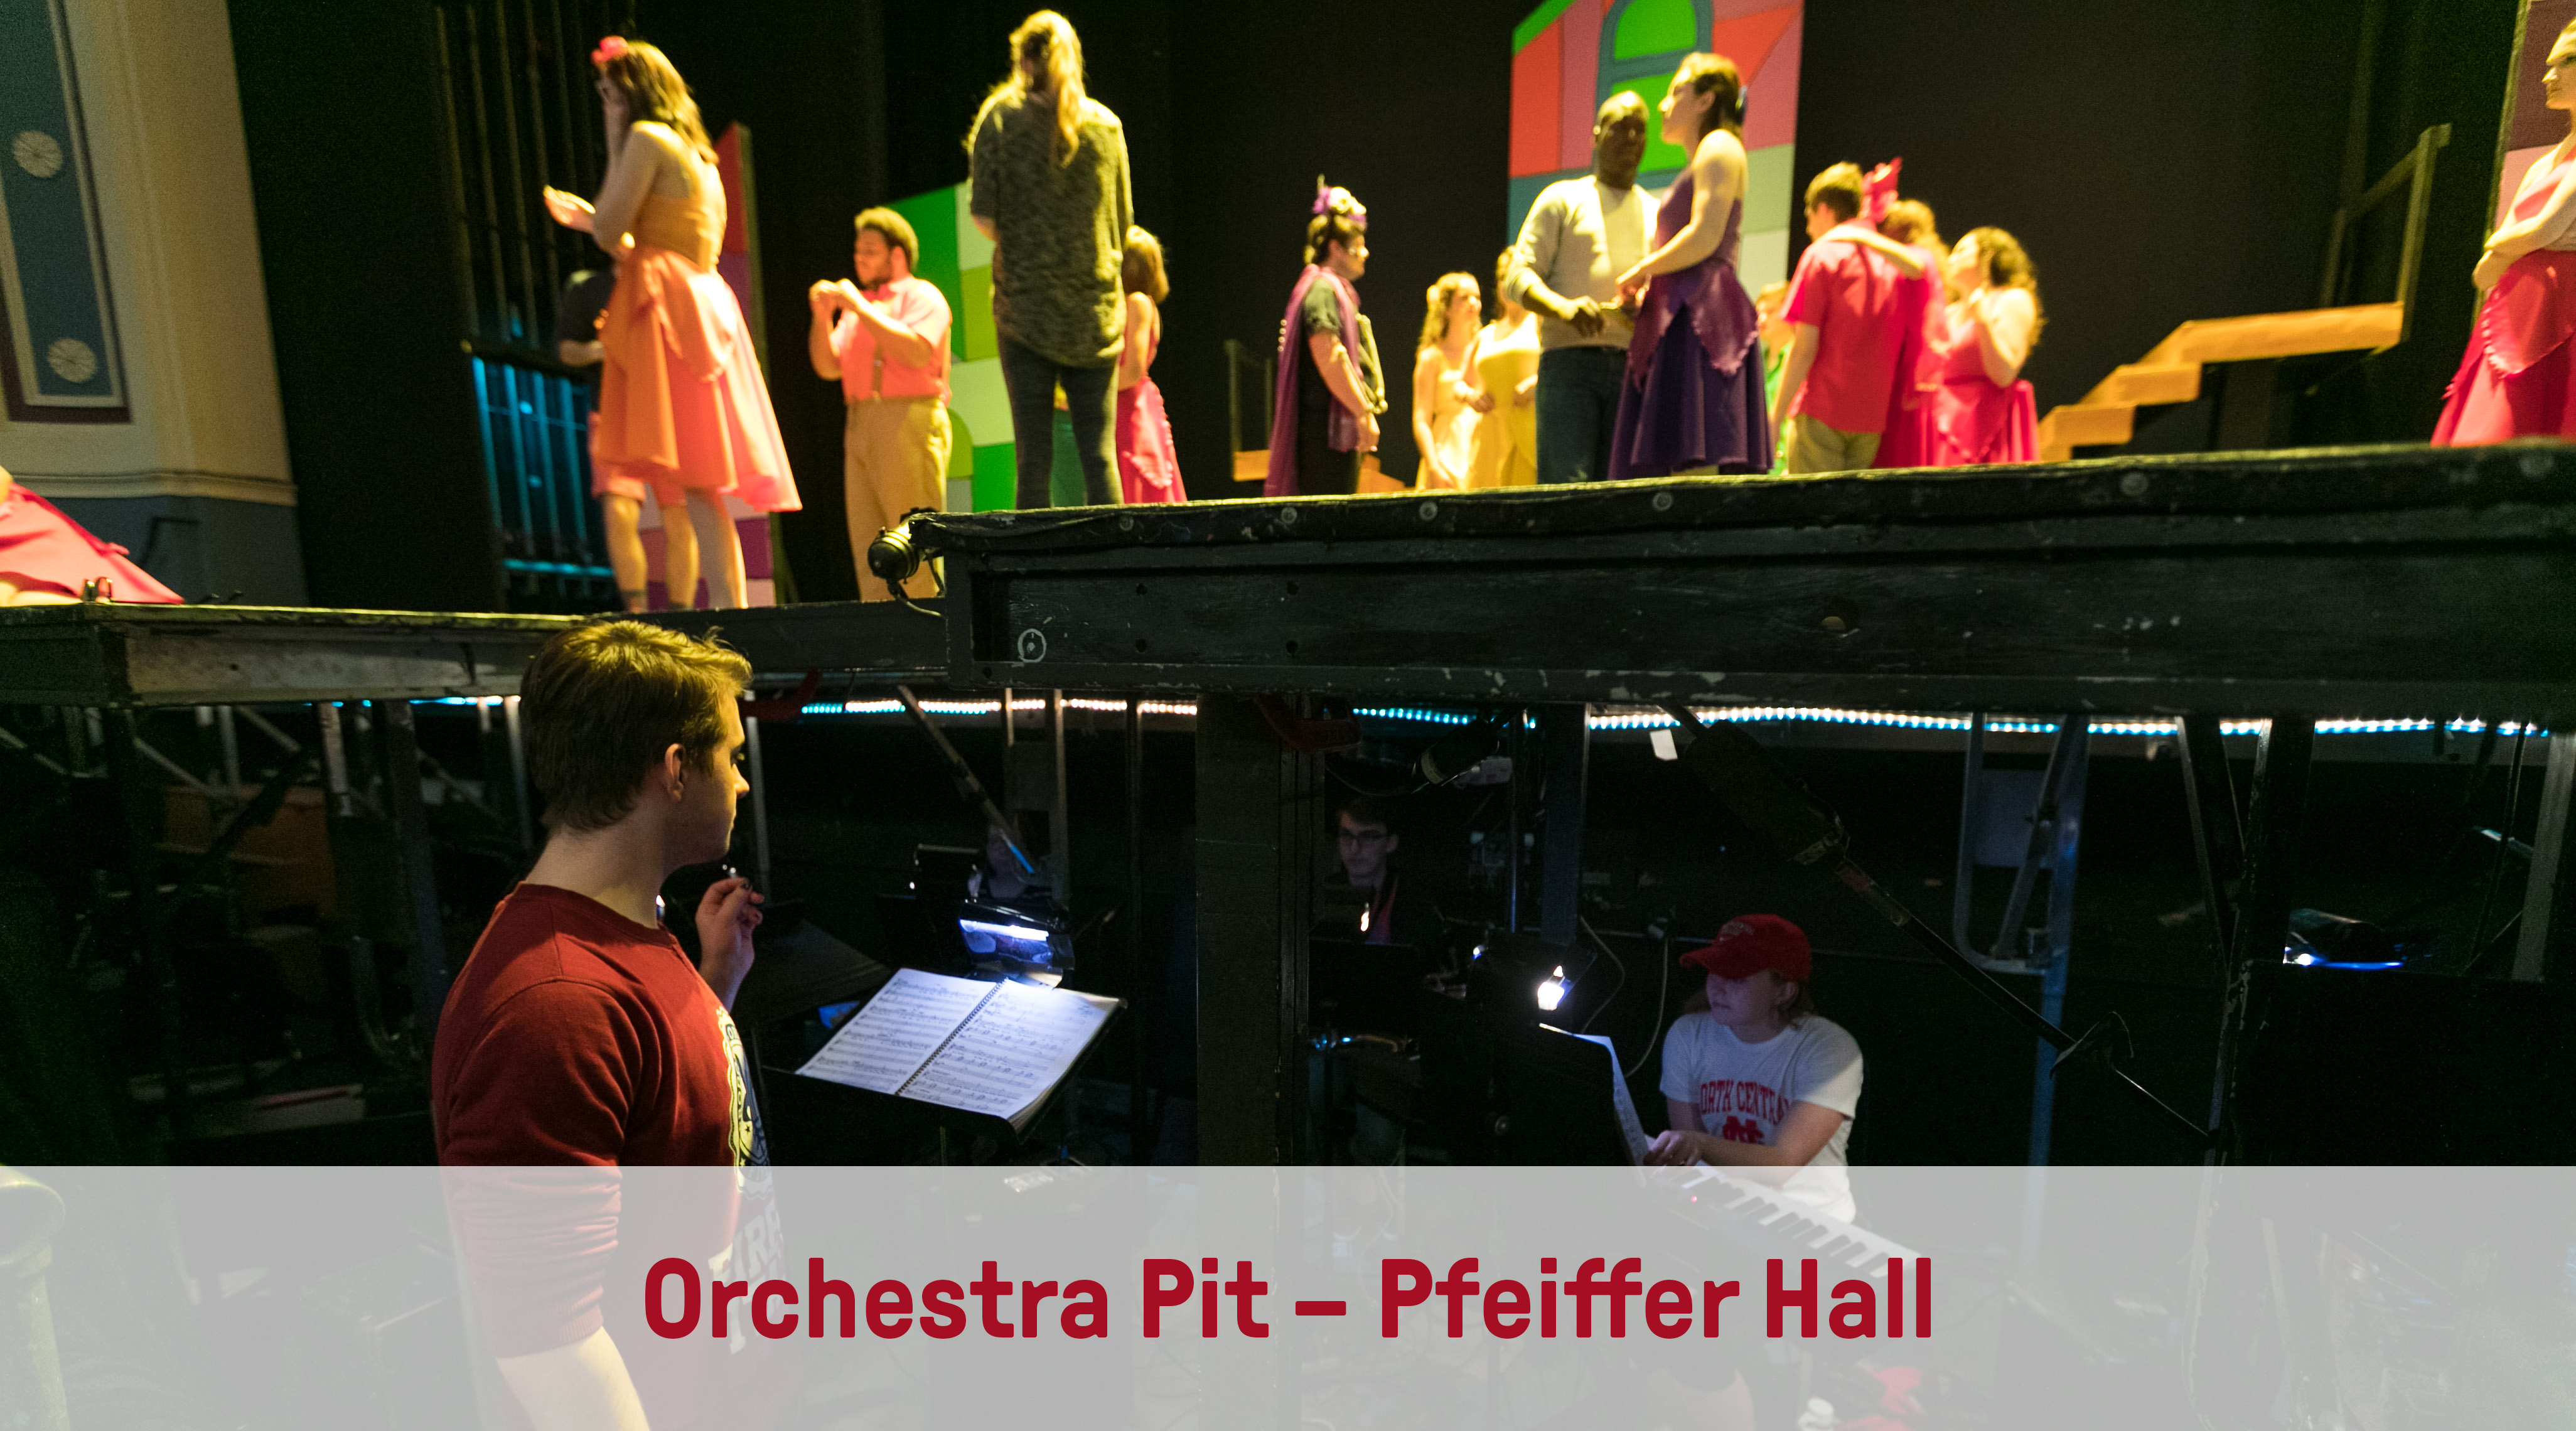 Orchestra Pit – Pfeiffer Hall